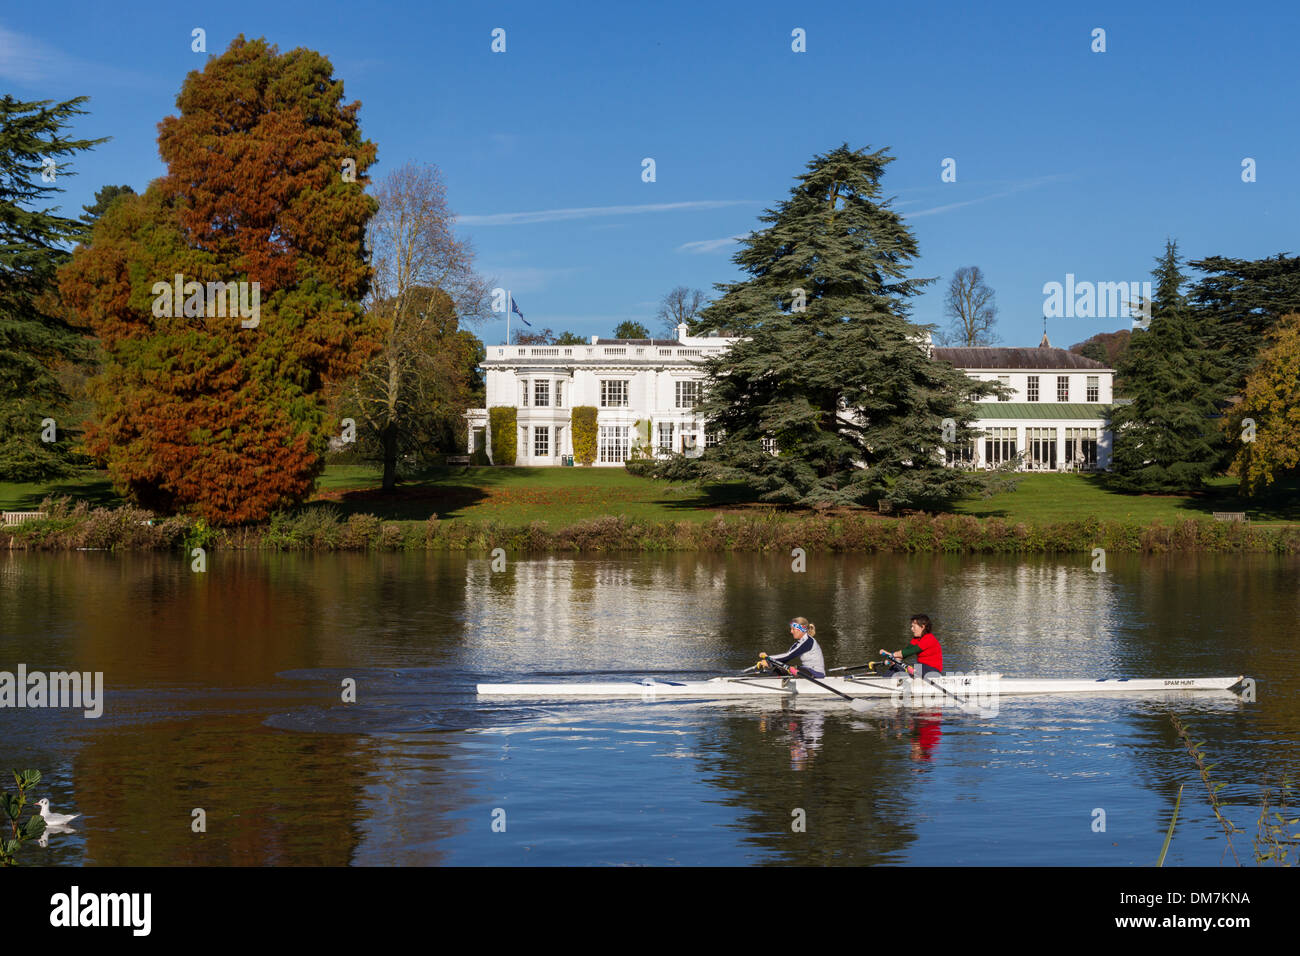 England, Buckinghamshire, autumn, rowers on river Thames, with Henley management college - Stock Image